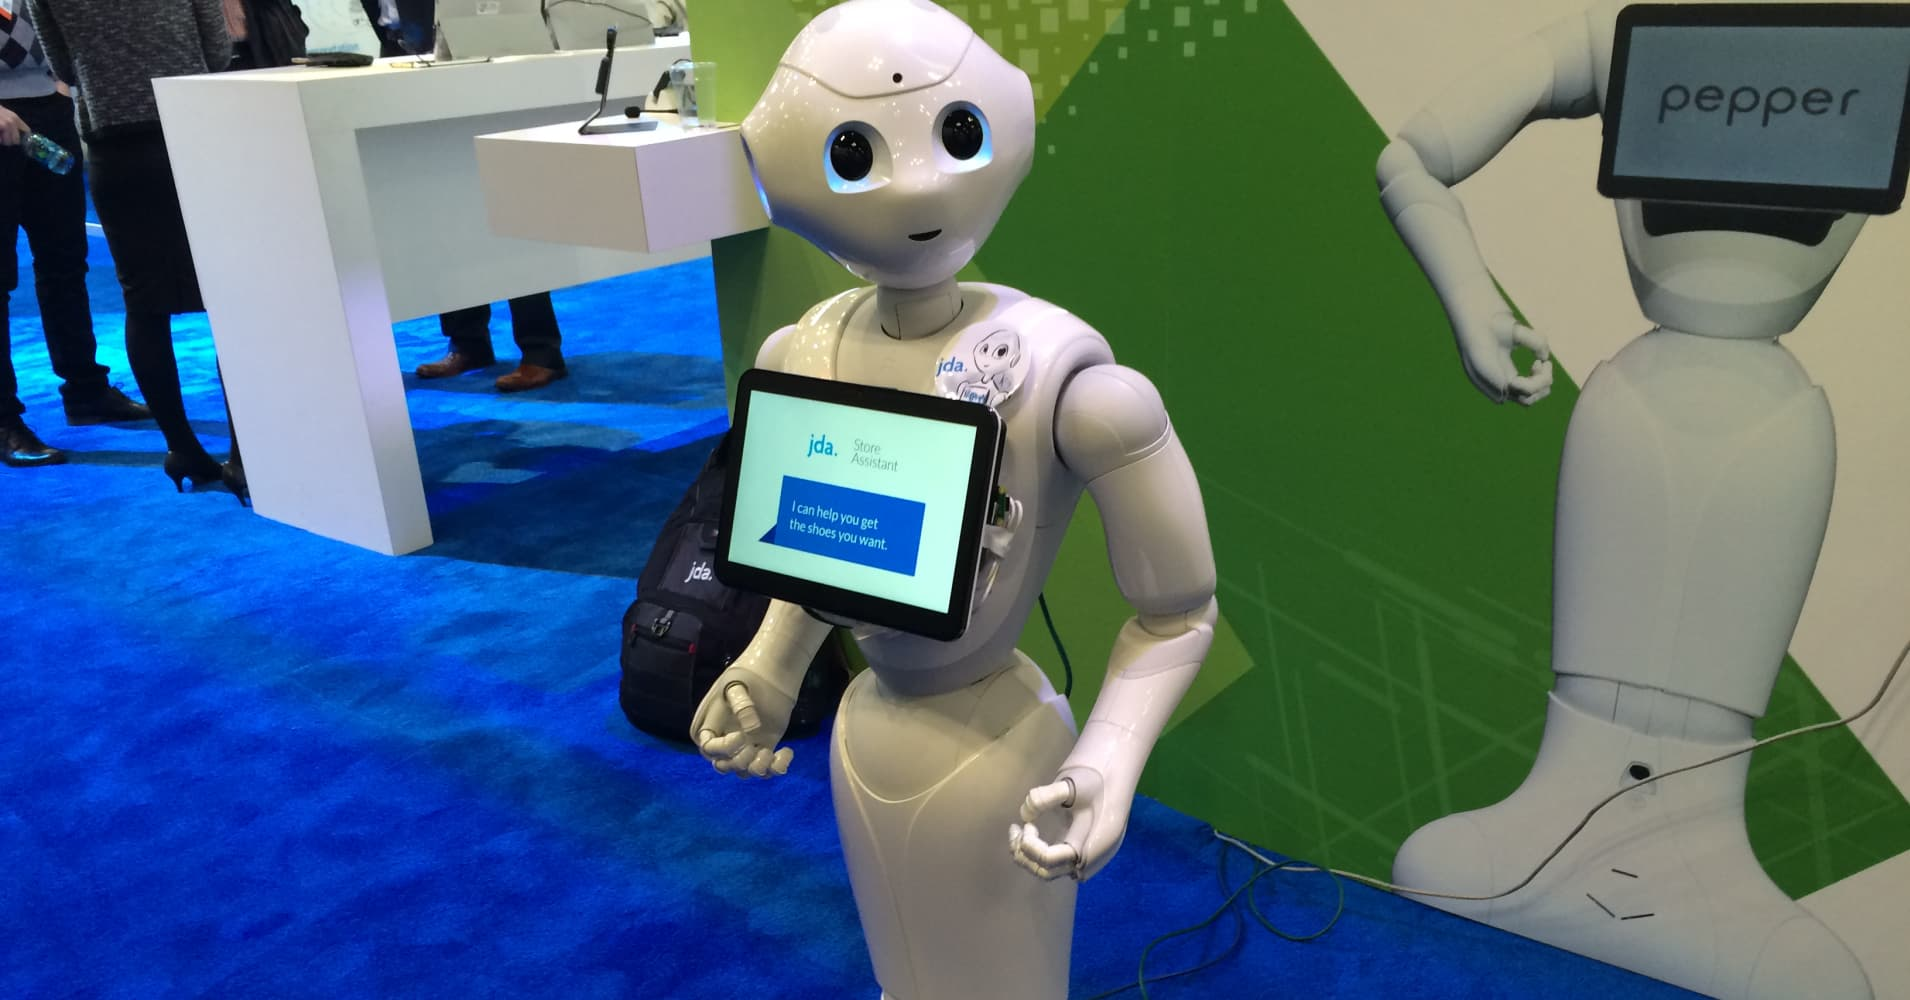 Pepper, a humanoid robot created by JDA Labs and Softbank, helps shoppers with customer service requests.